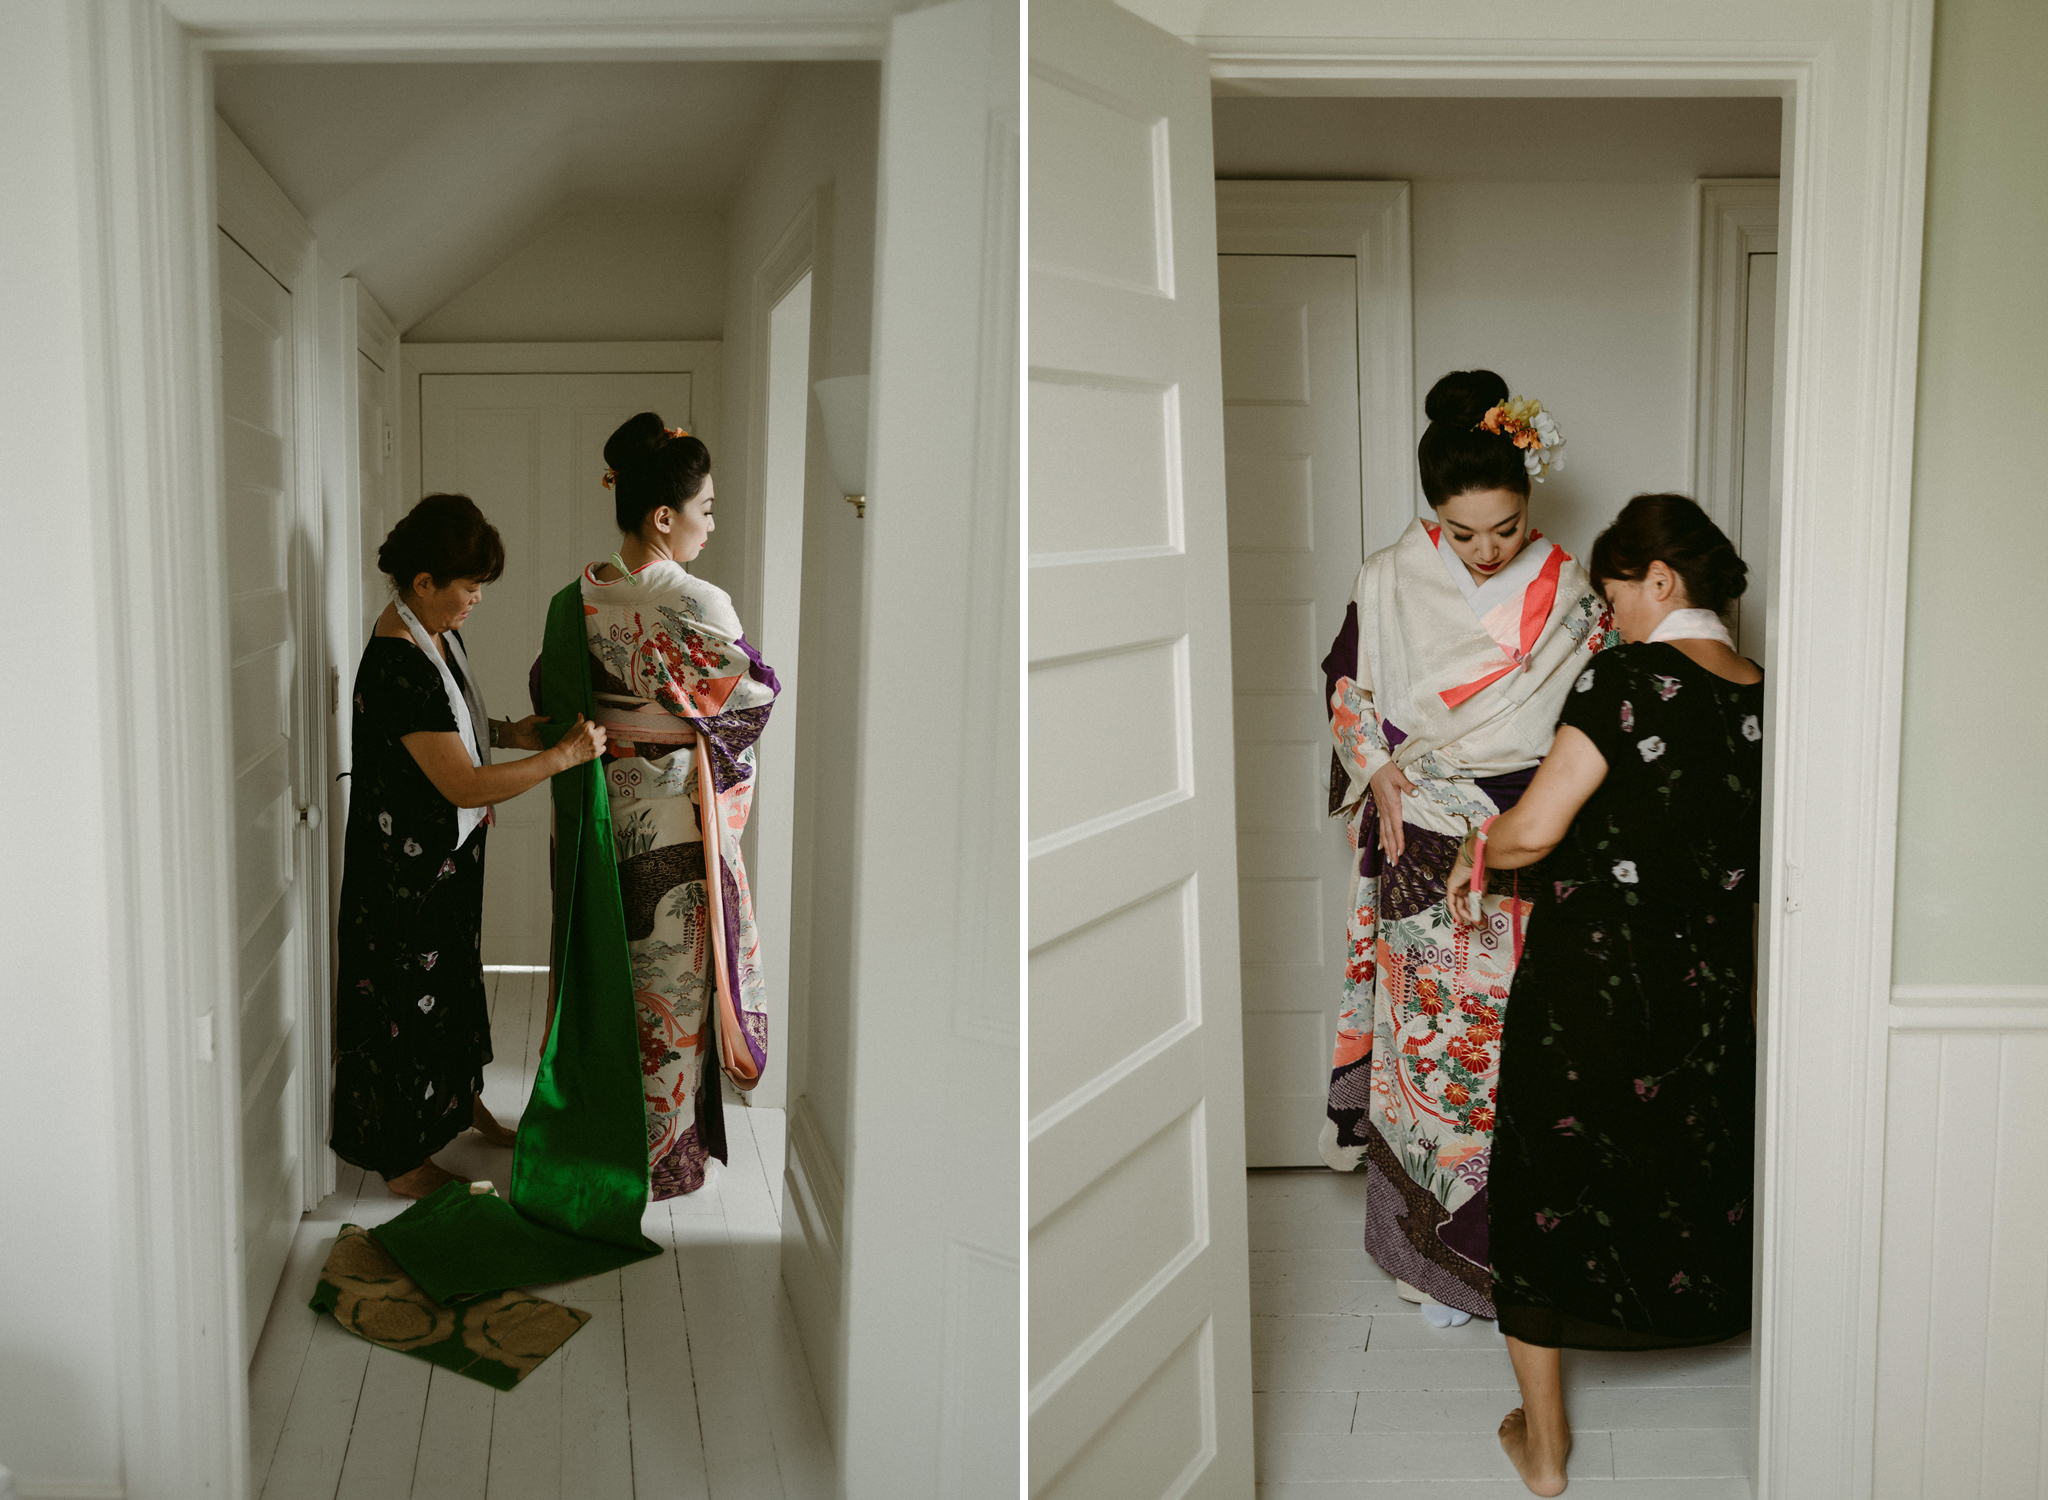 Japanese women being fitted into kimono